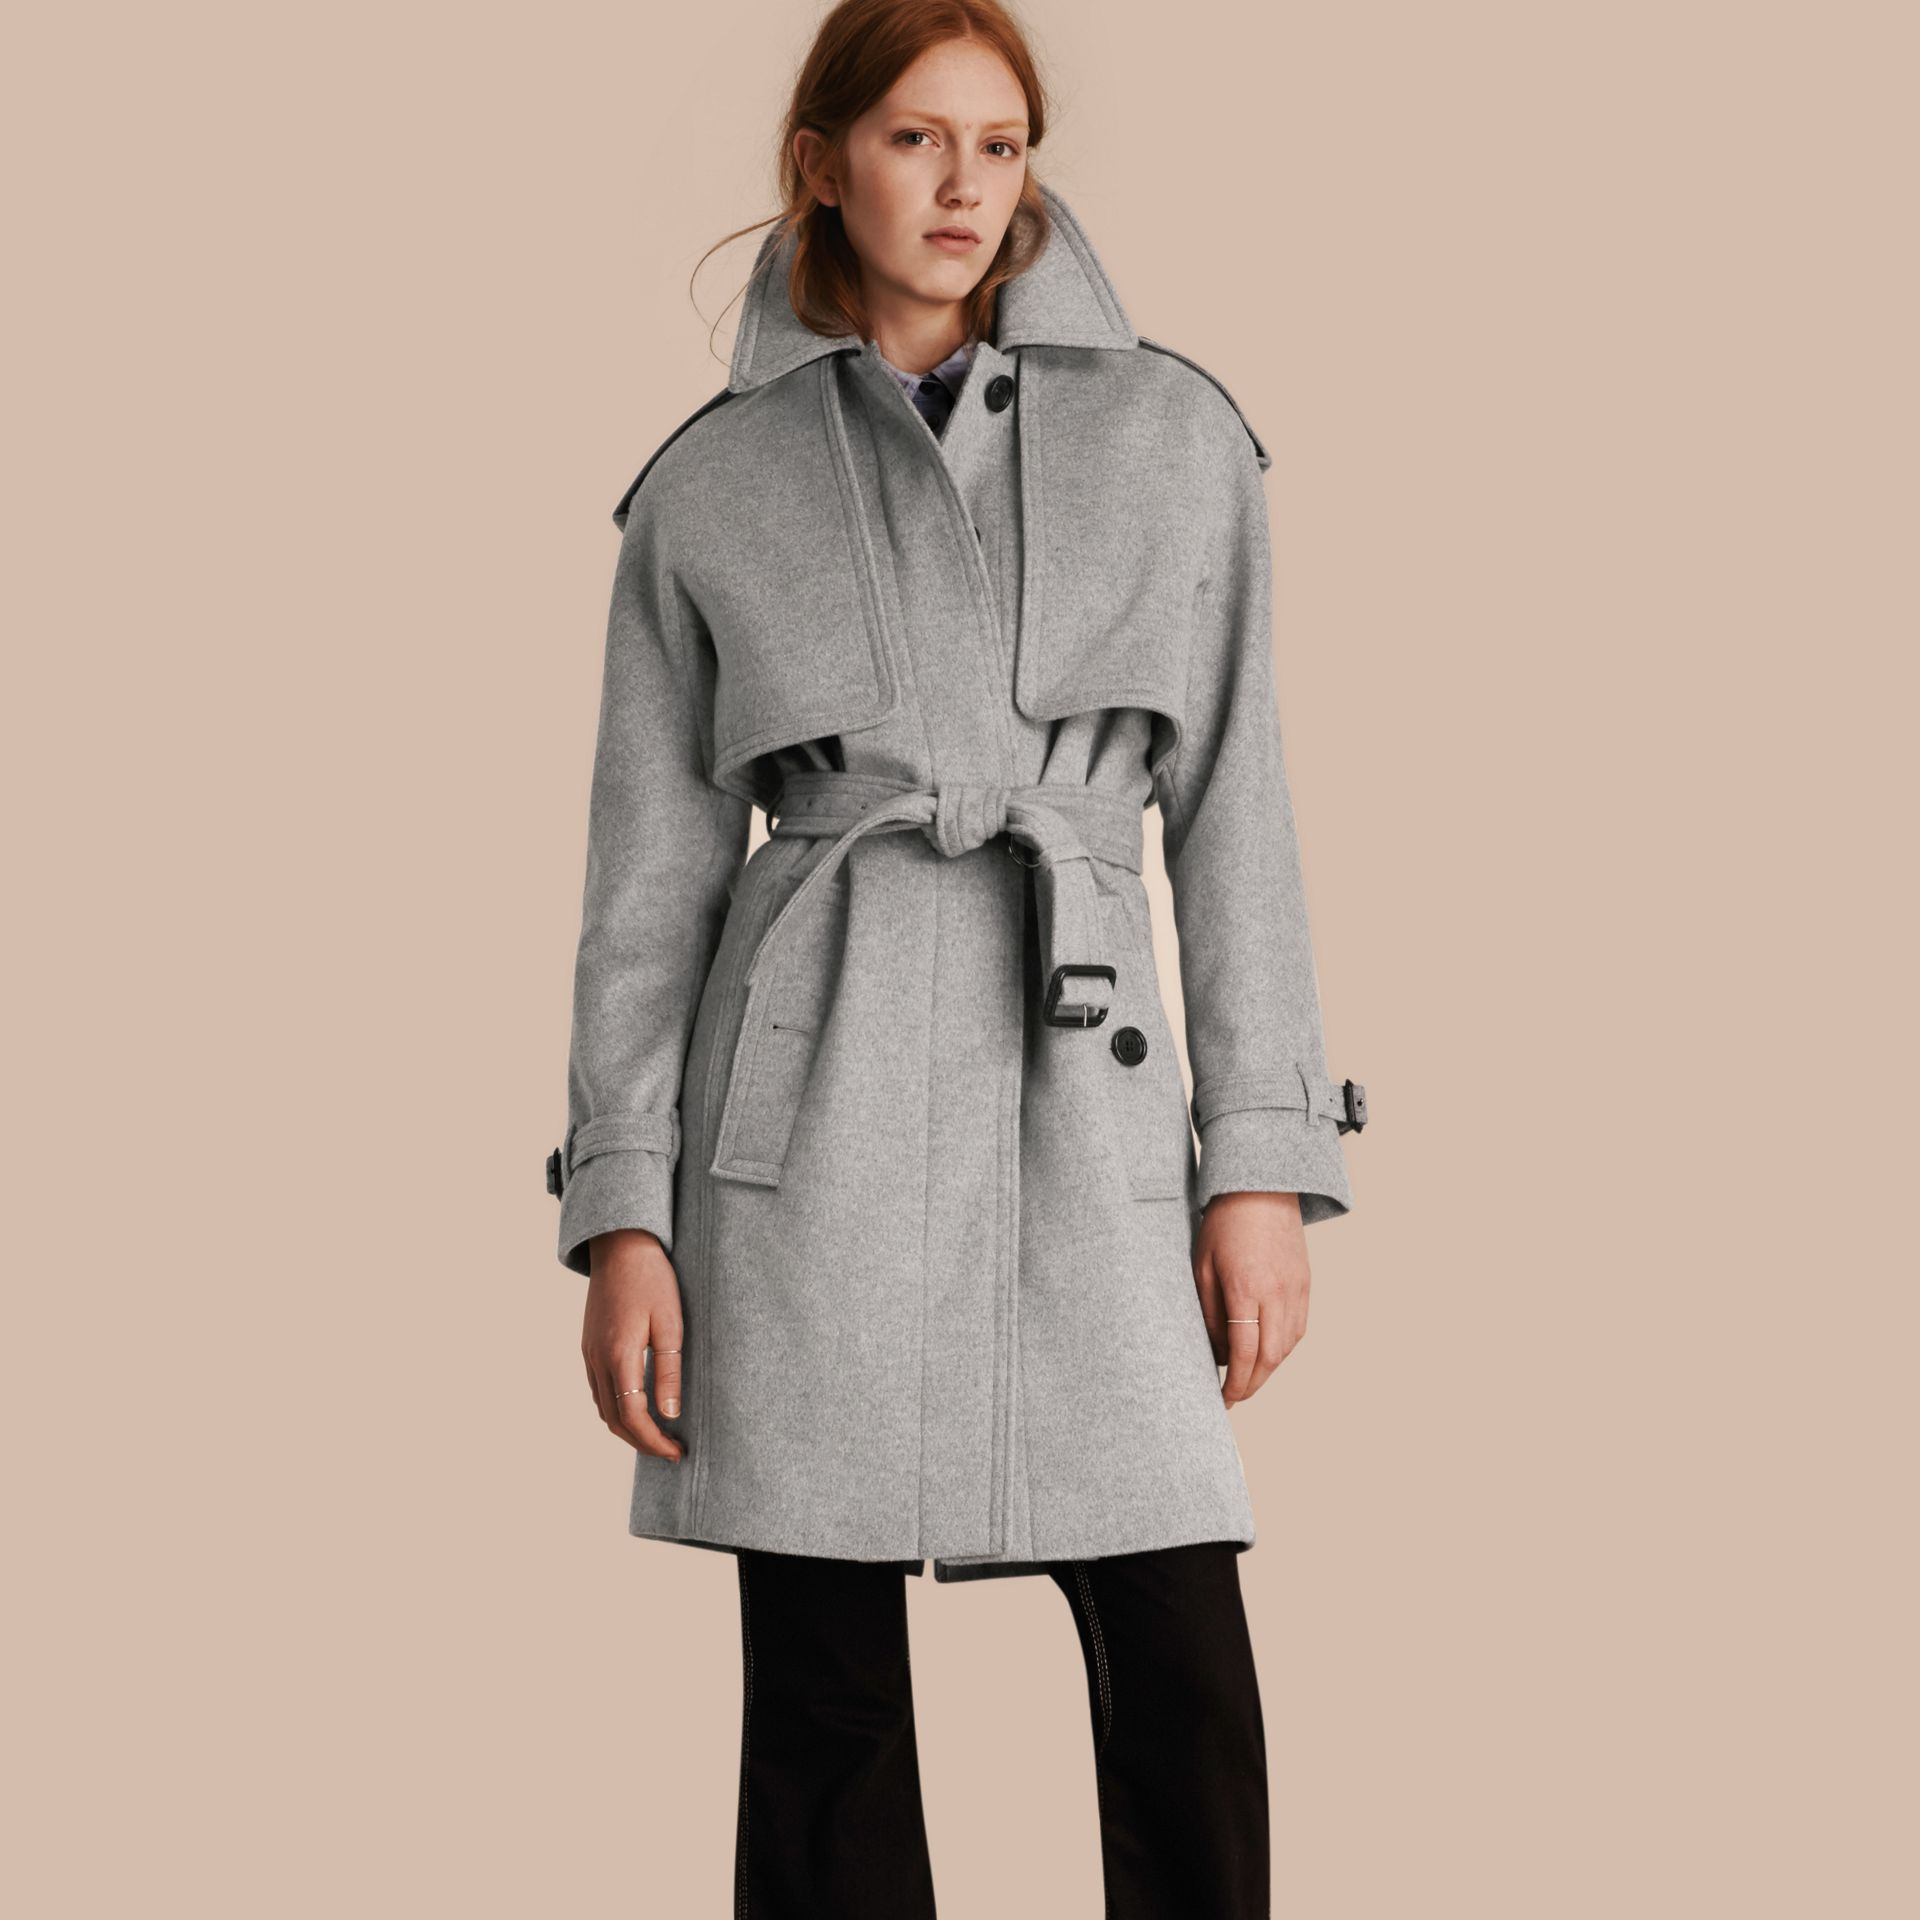 Pale grey melange Wool Cashmere Trench Coat with Oversize Detailing - gallery image 1